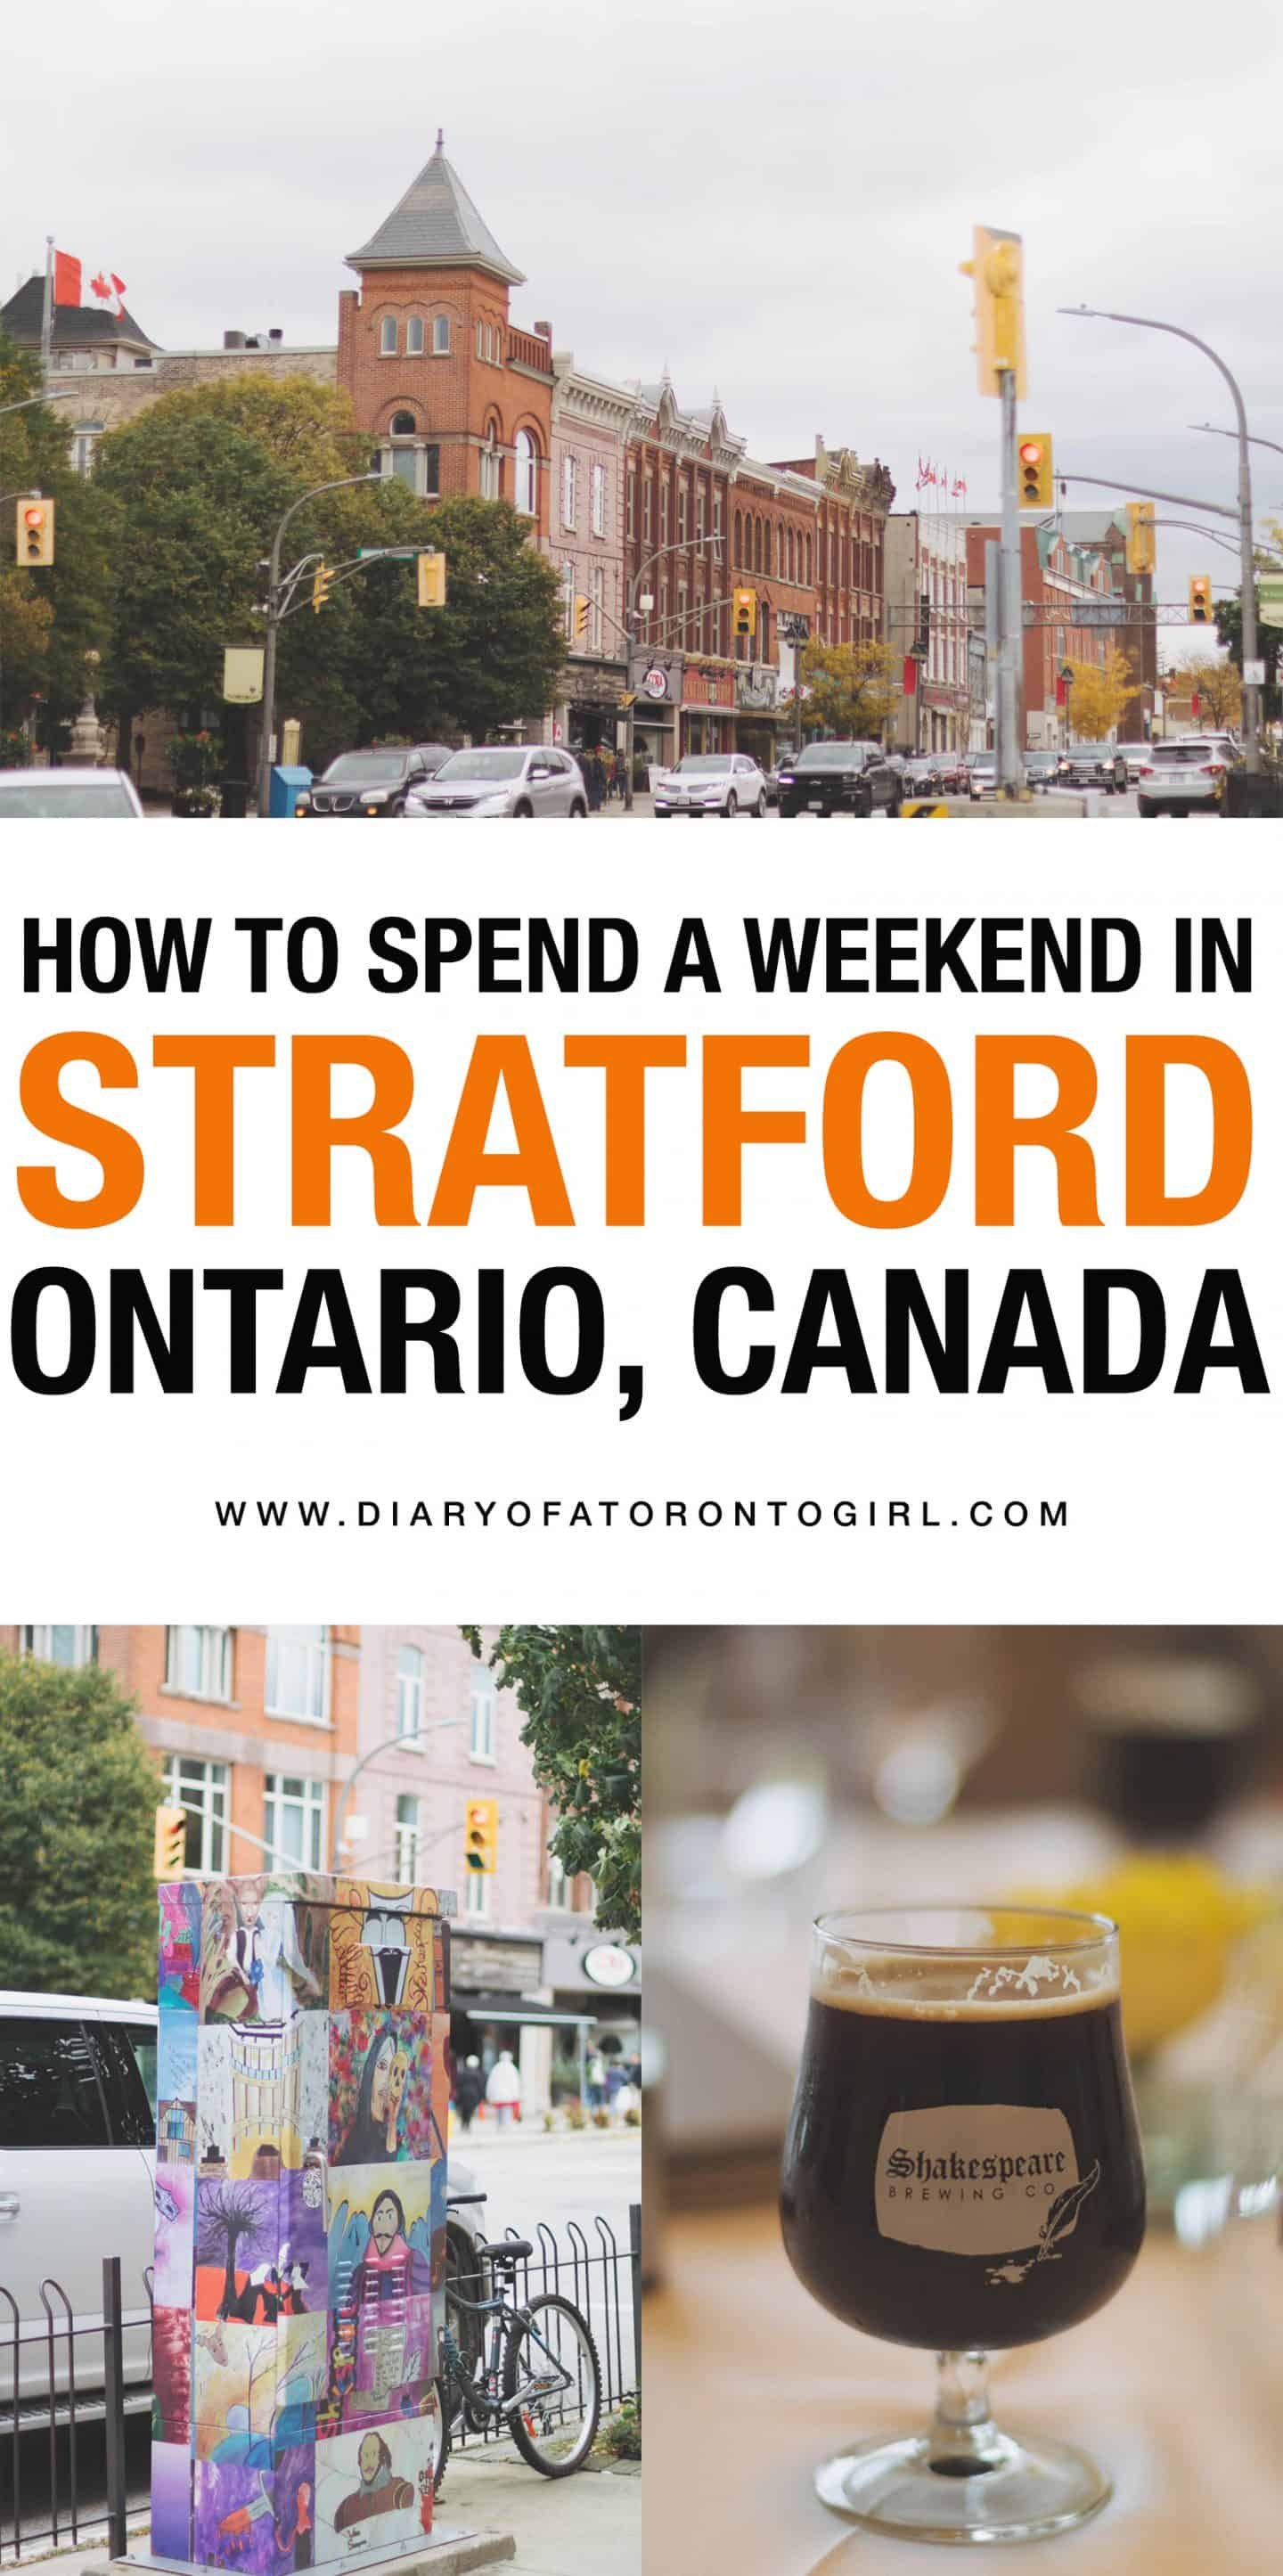 The ultimate guide on what to do, where to stay, and the top restaurants to eat at while you're visiting Stratford, one of the best places for arts and culture in Ontario!